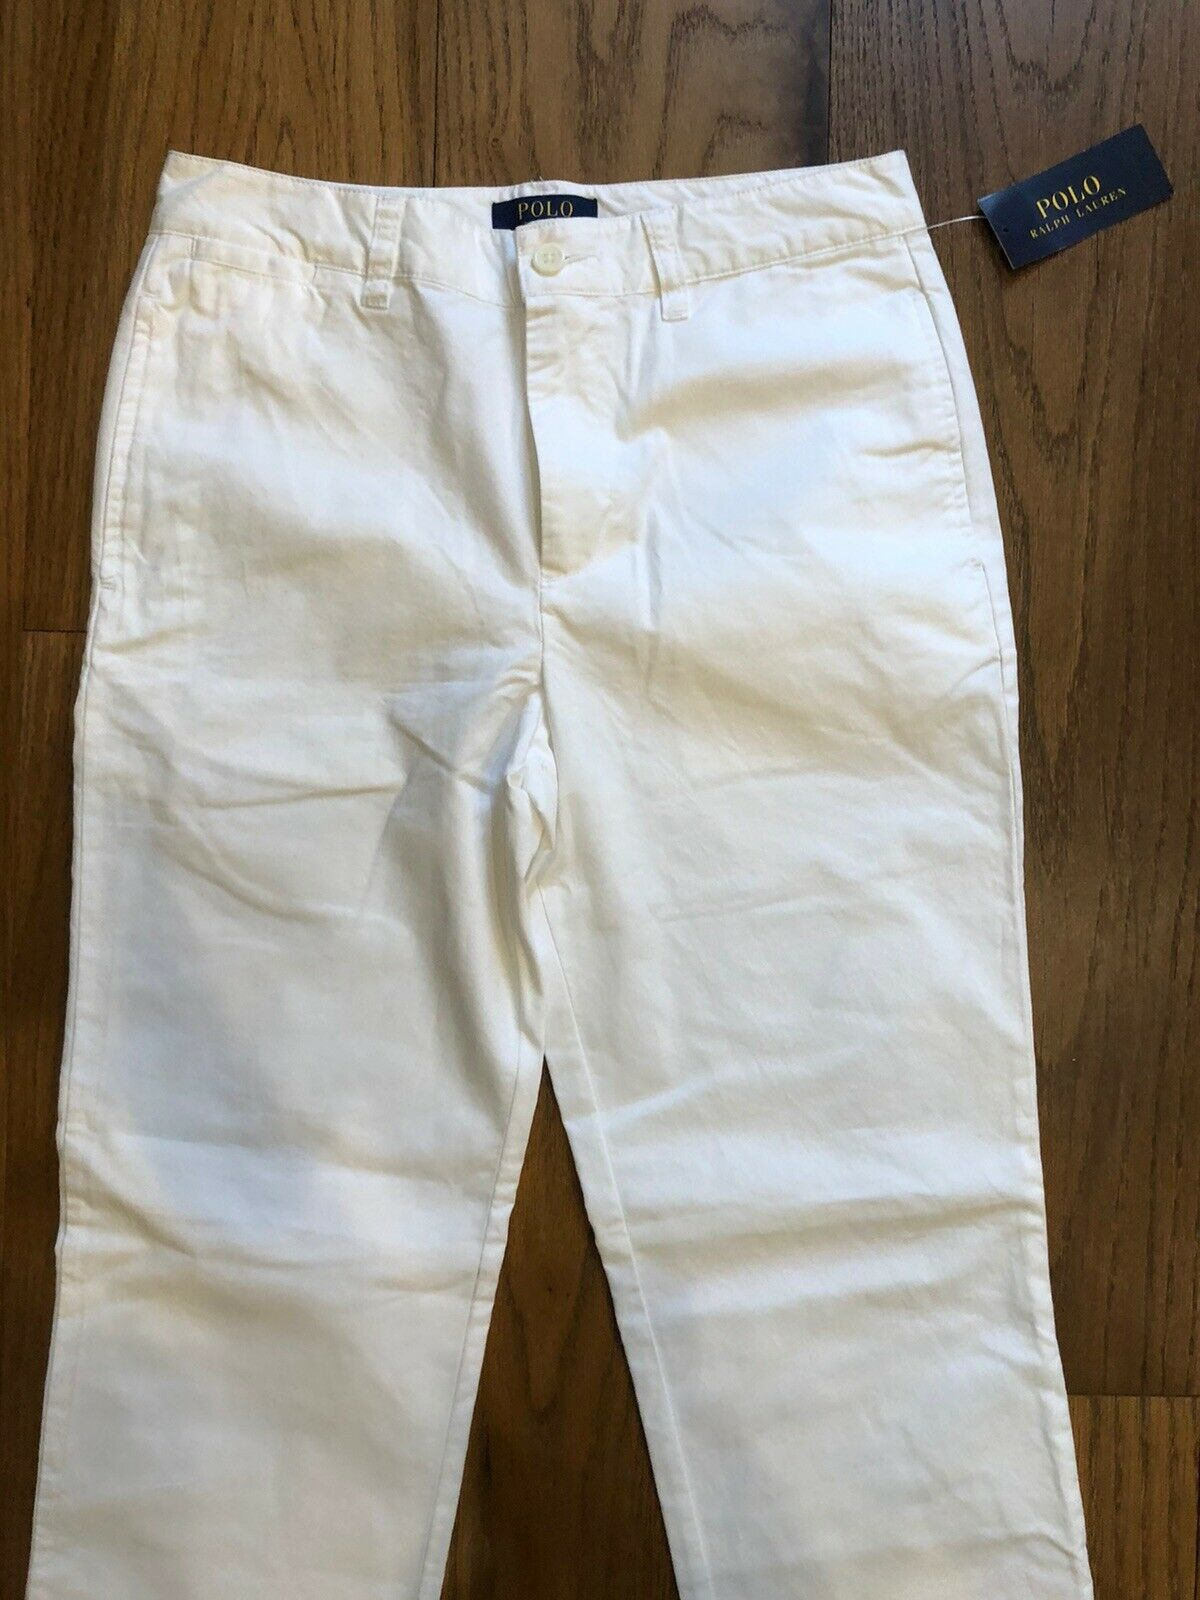 Polo RALPH LAUREN Slim Fit Cotton Twill WHITE Dress PANTS Slacks Boys Sz 16 NEW